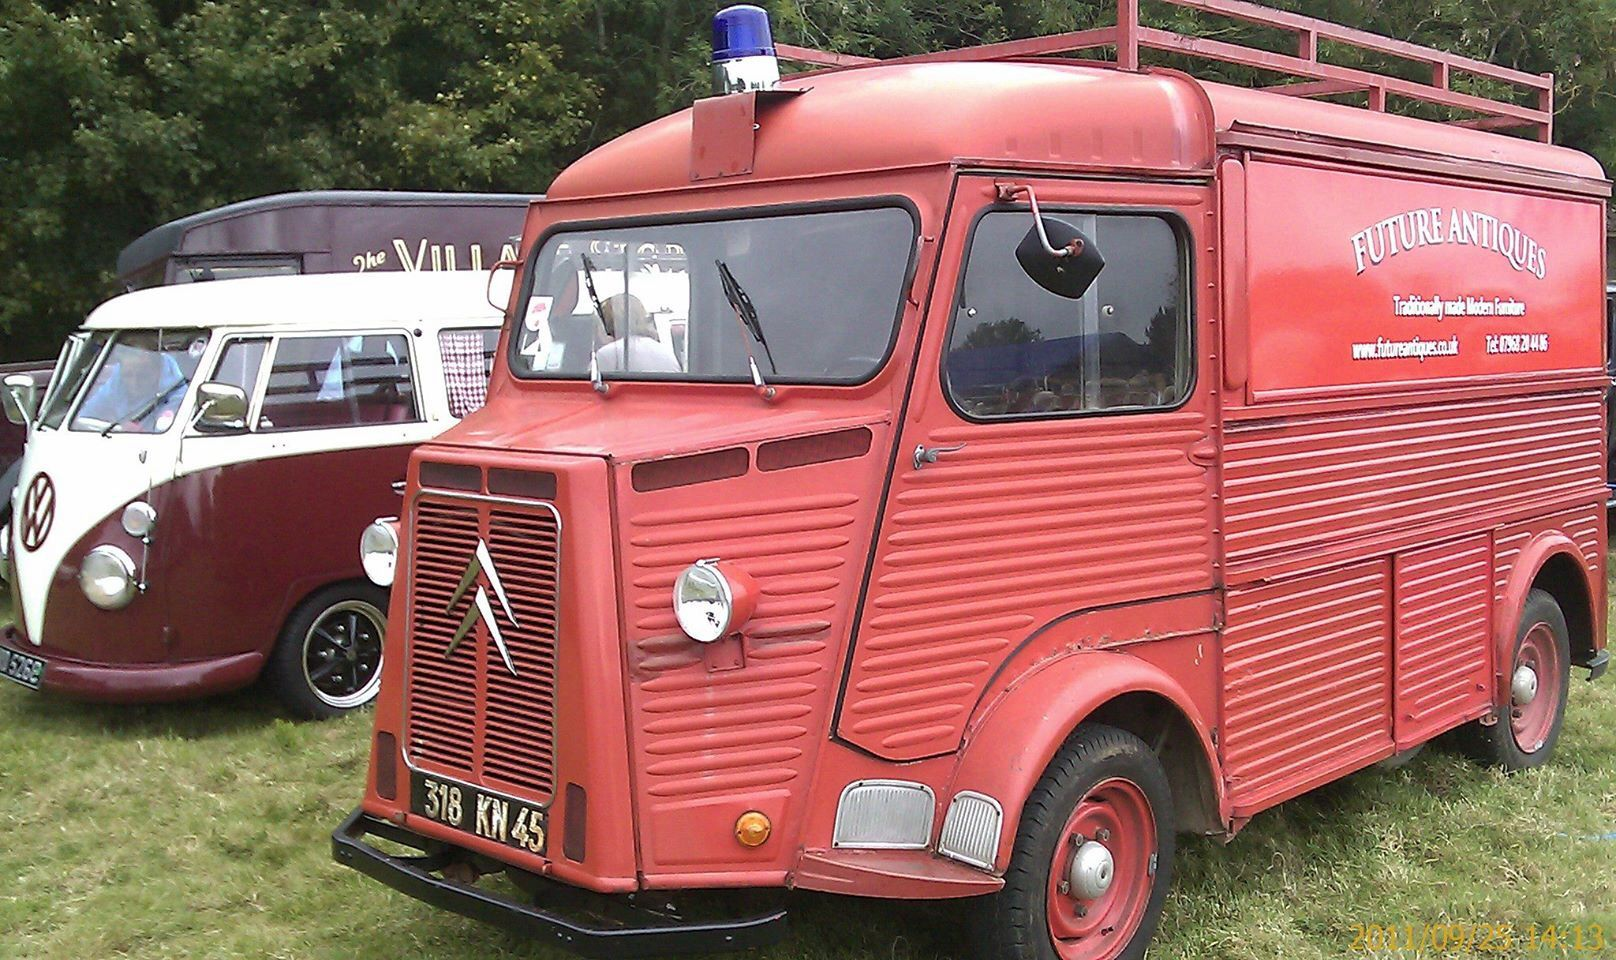 1966 french fire engine citroen h van commune st martin d arbart work